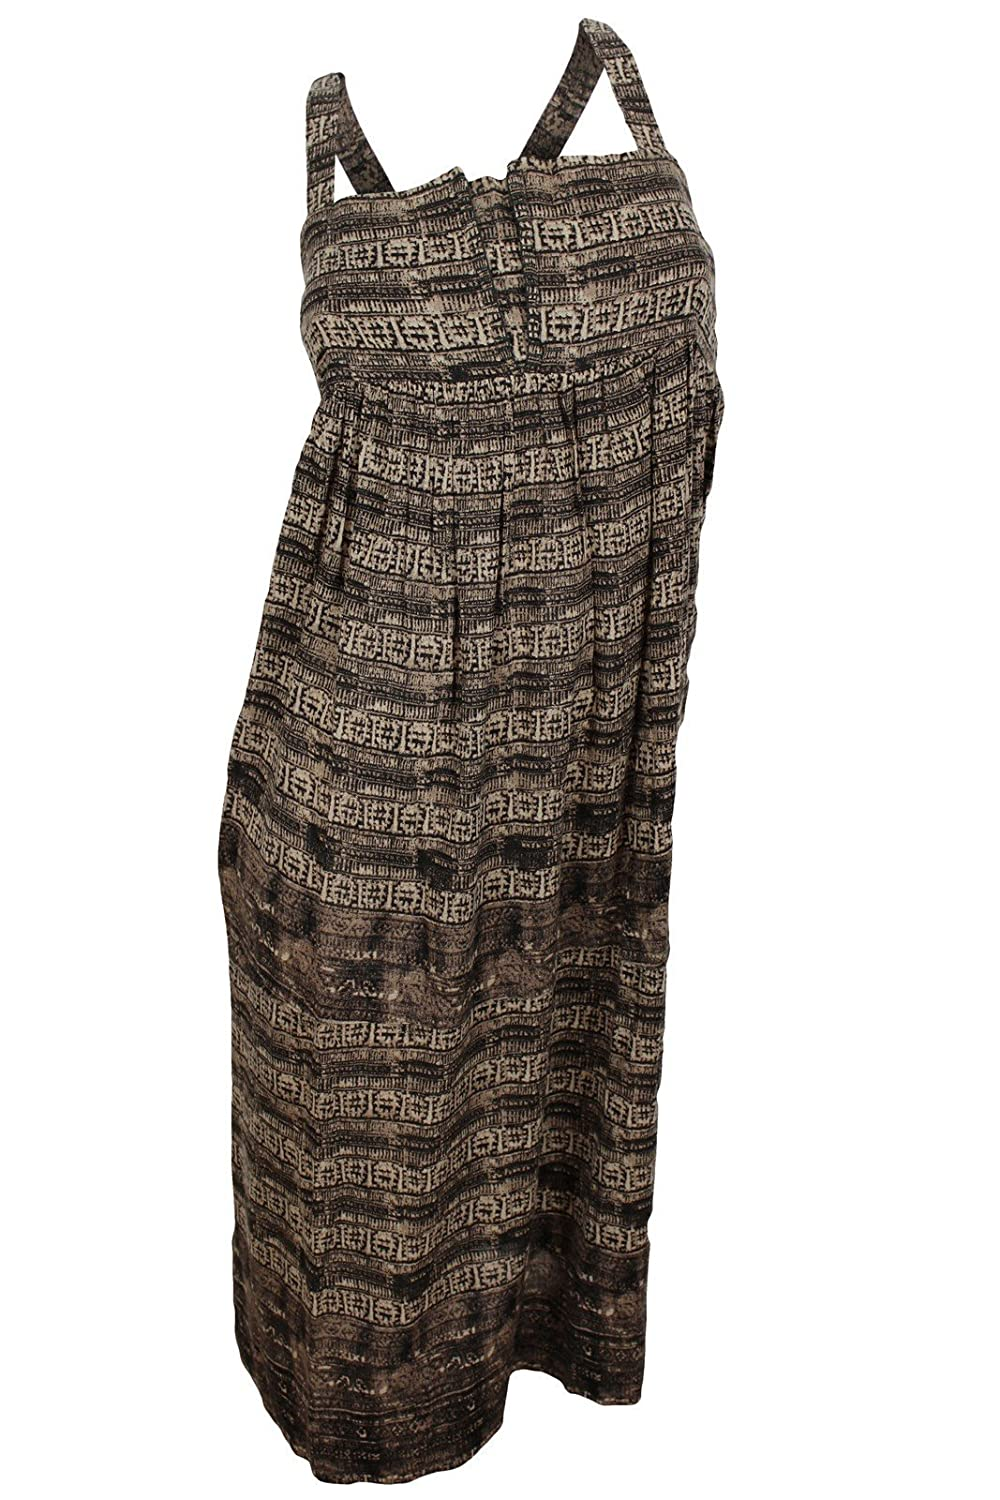 Free People Women's Brown Abstract Striped Sundress